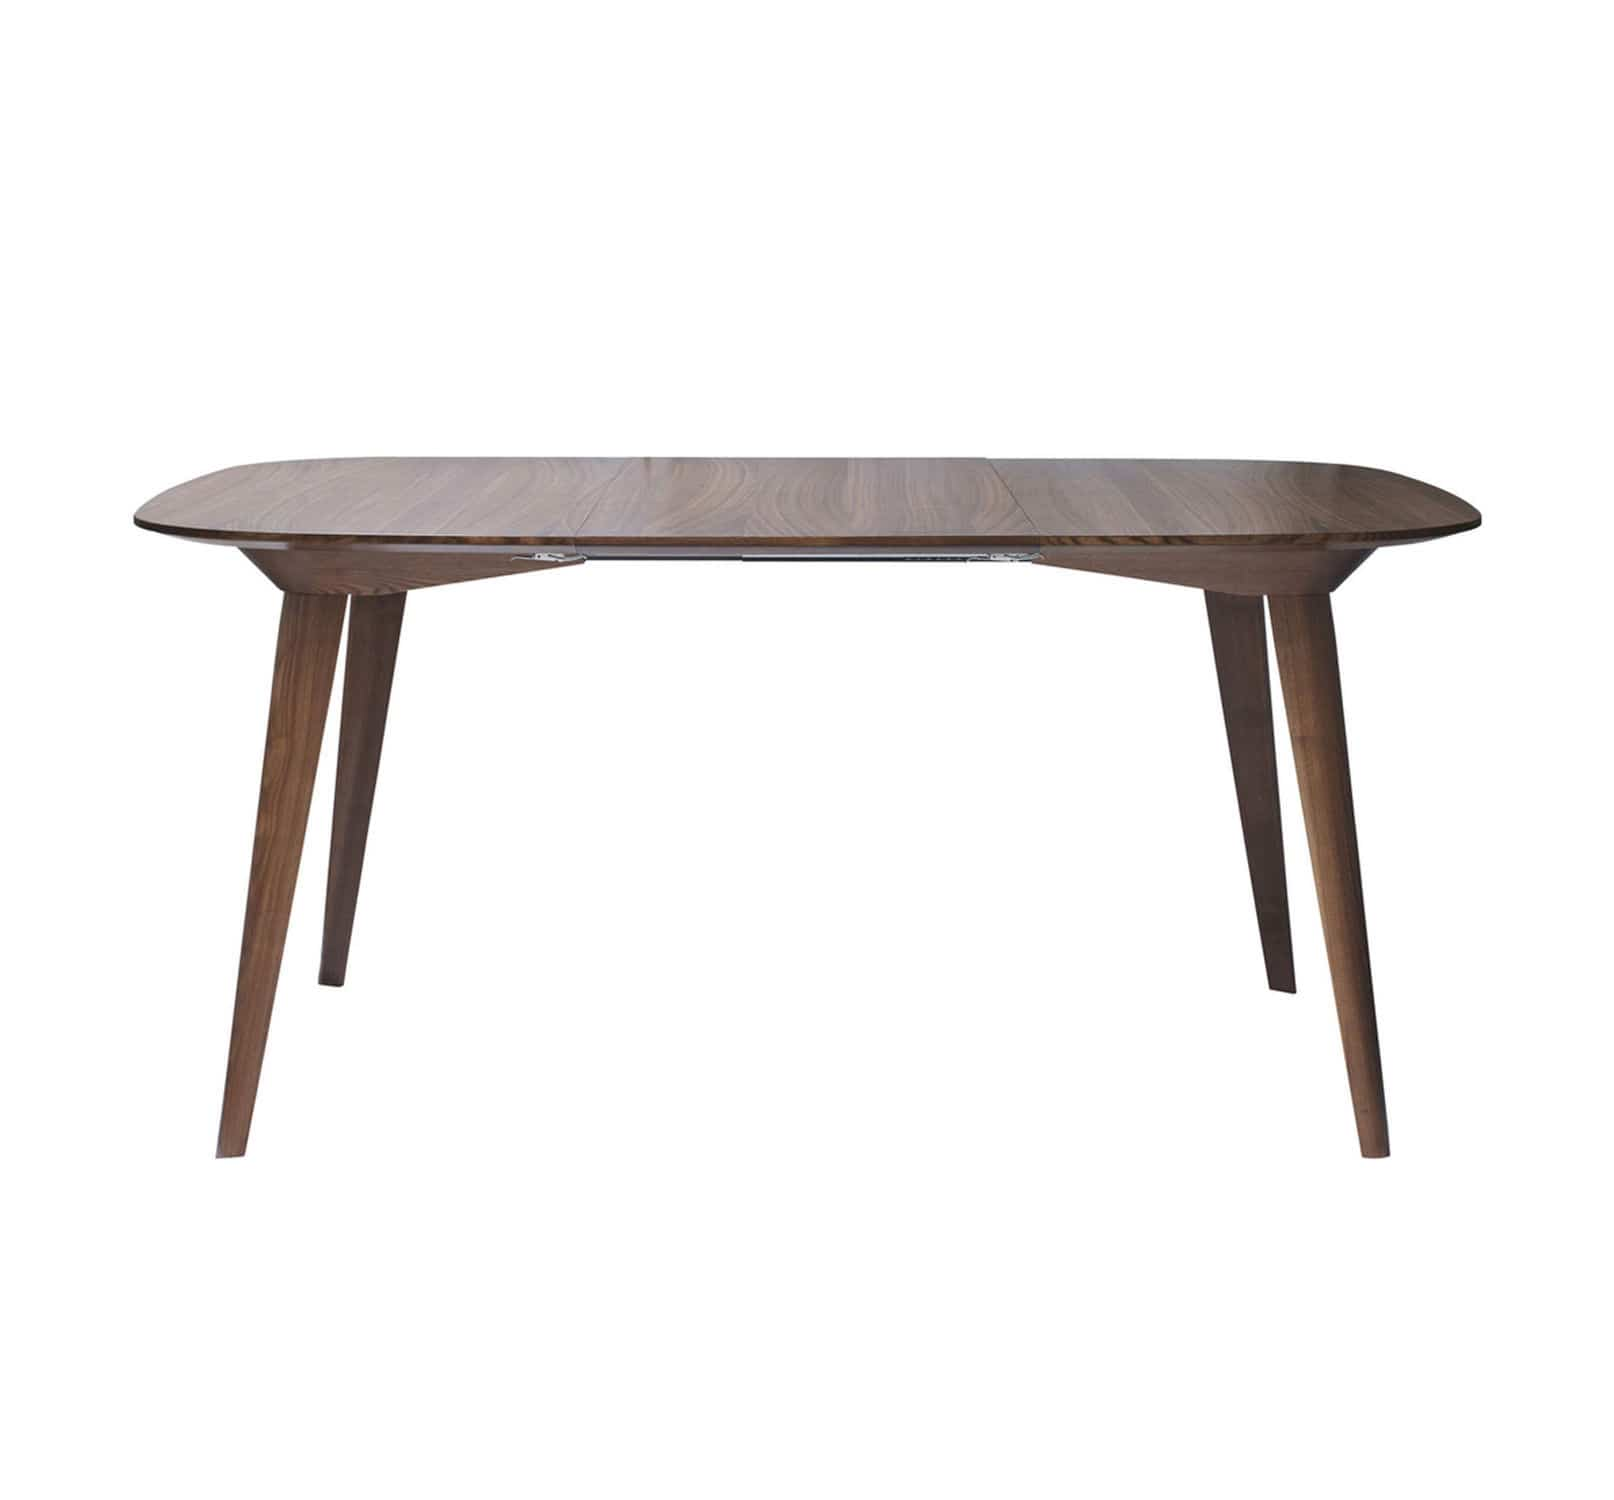 Contemporary table wooden rectangular extending BRIDGE by